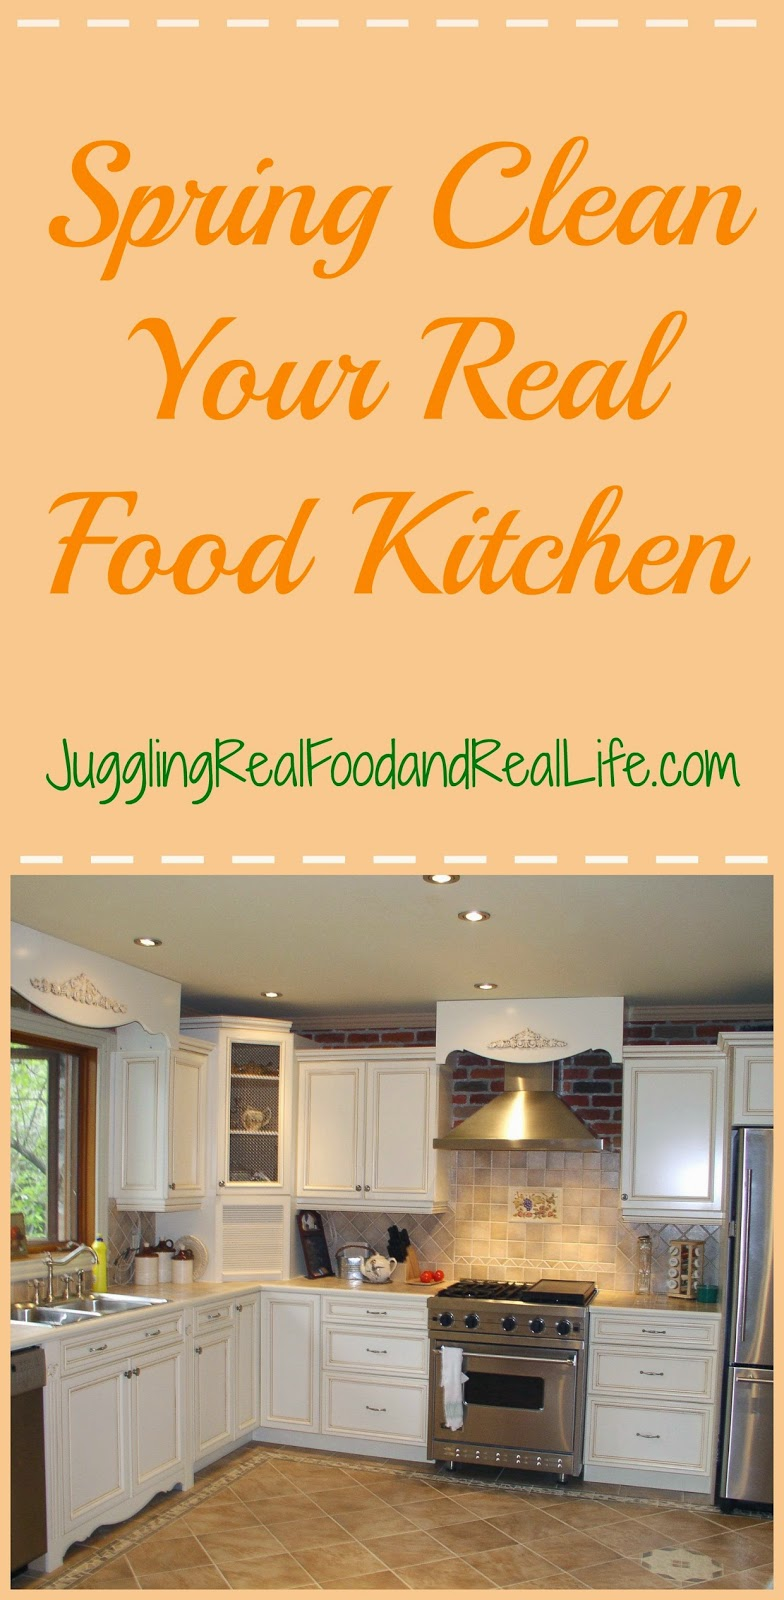 Spring Clean Your Refrigerator – You Know It Needs It